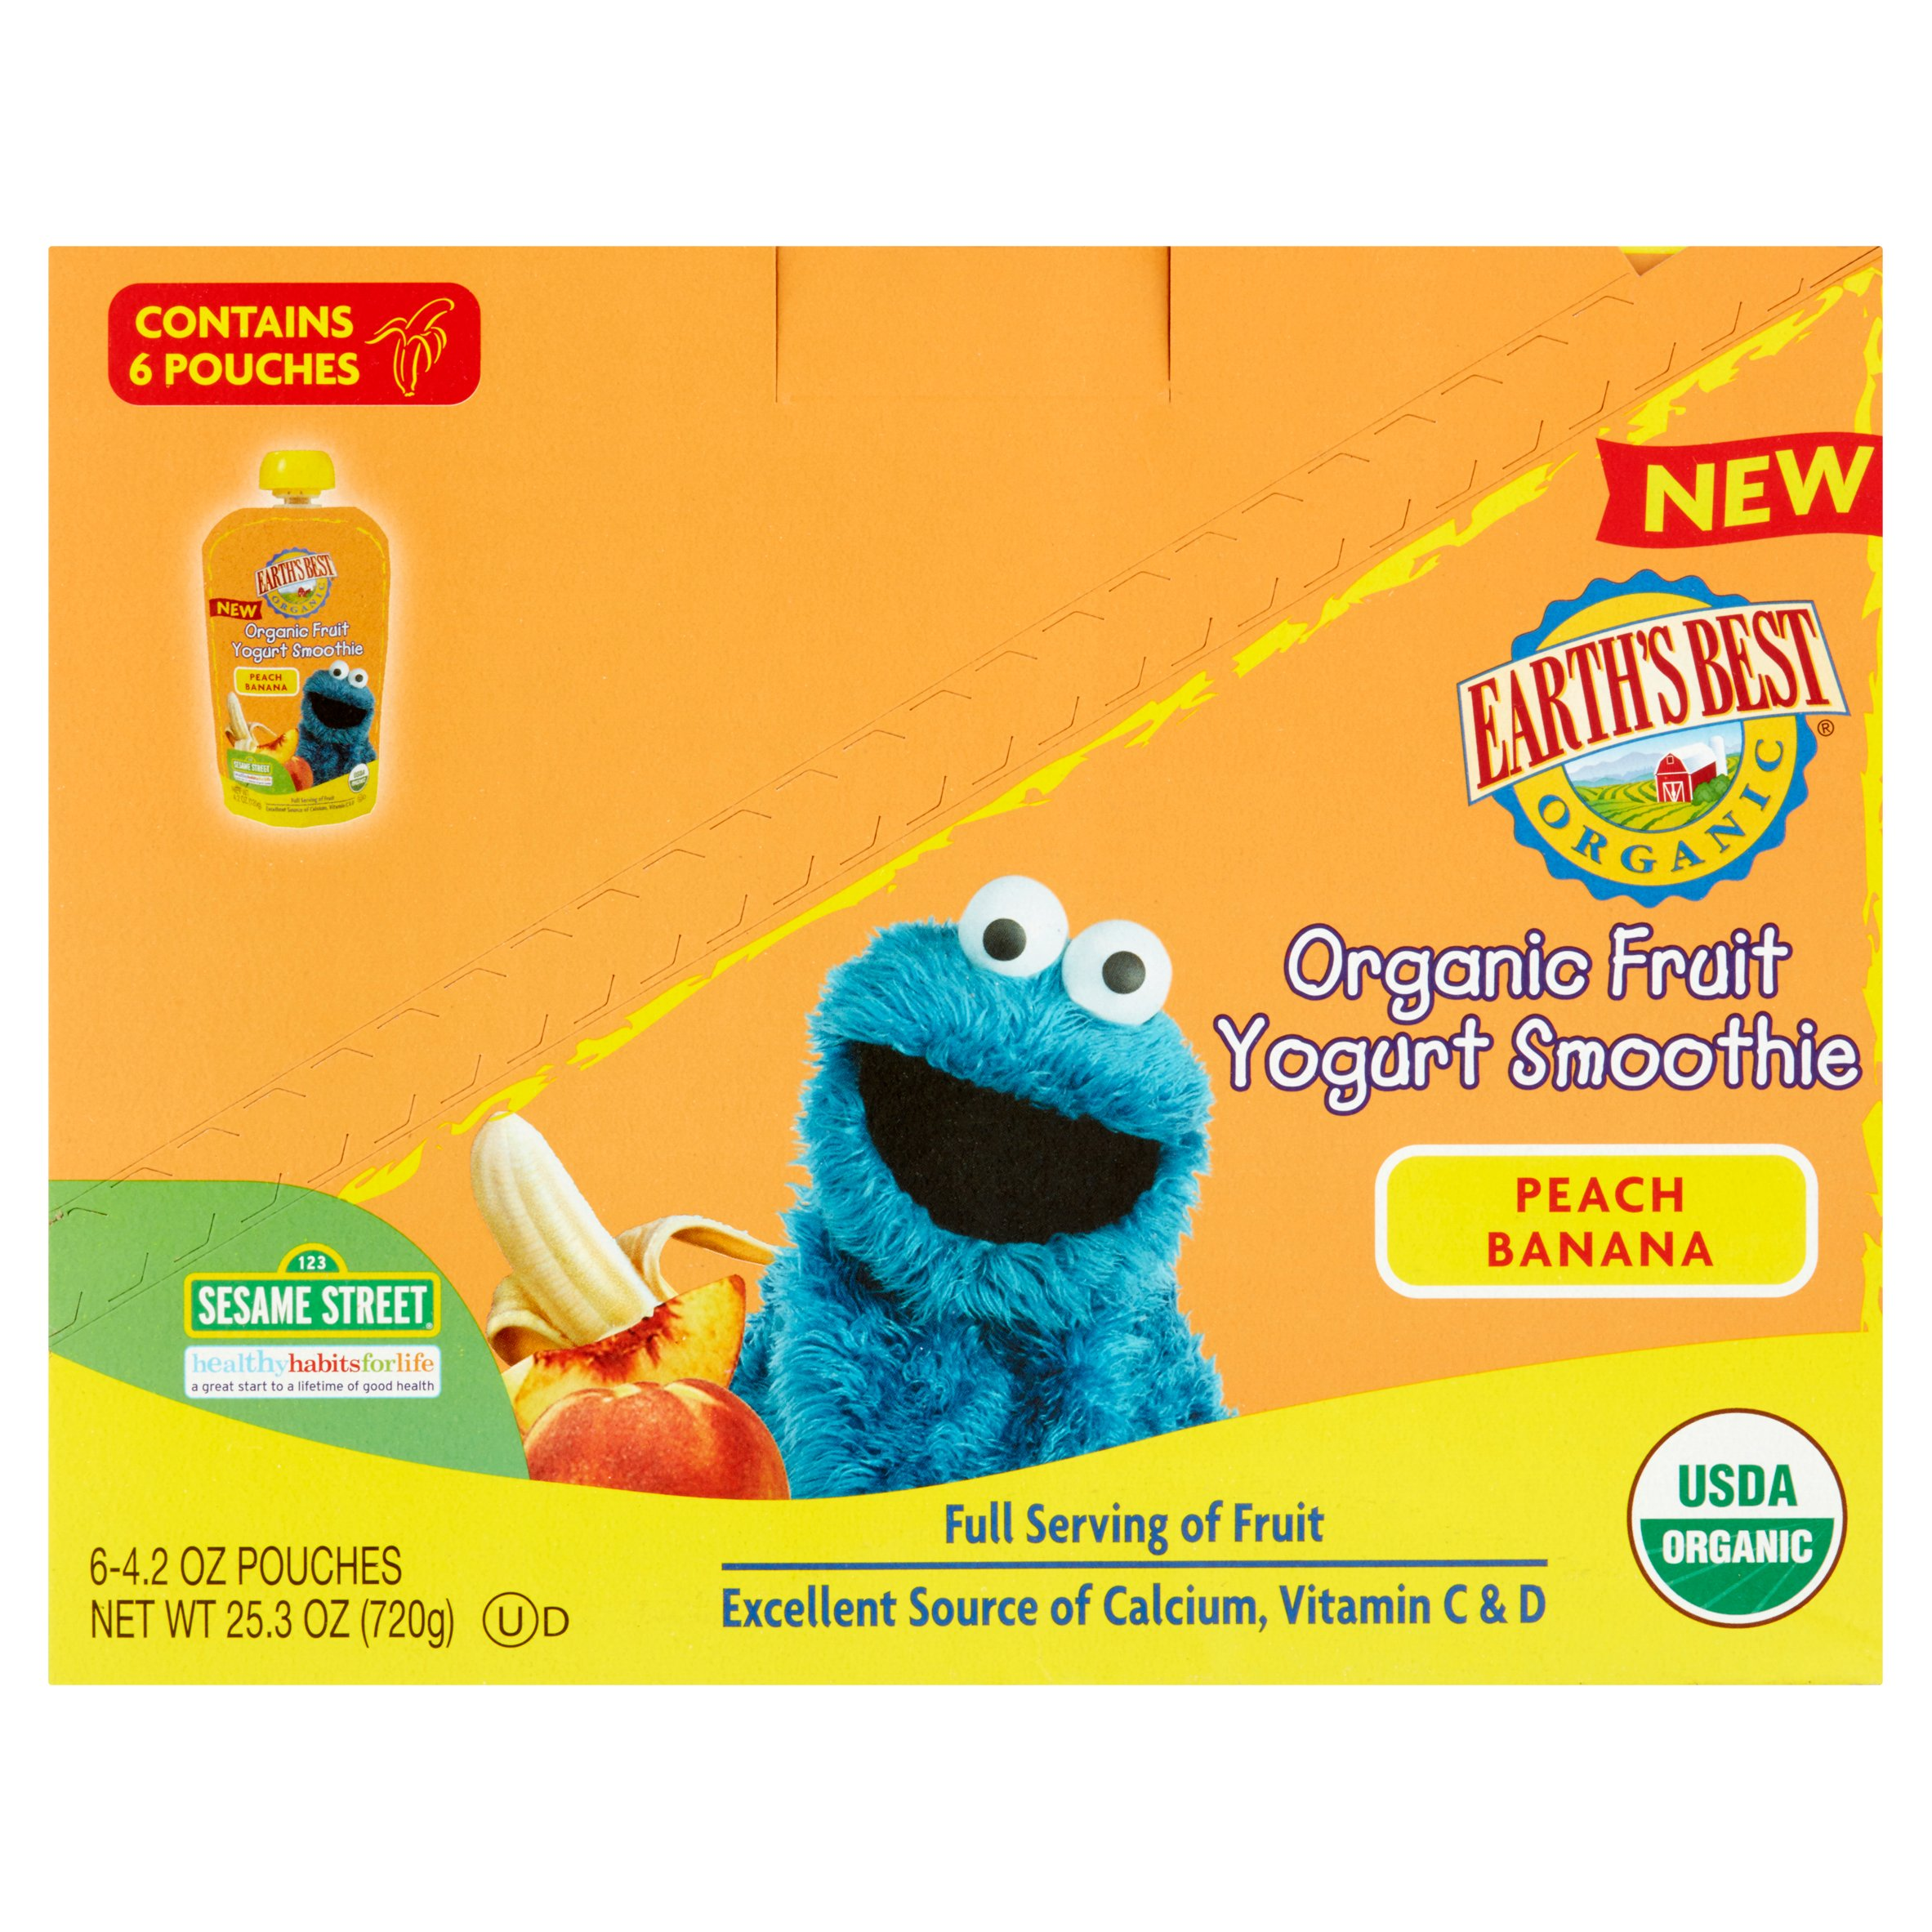 Earth's Best Organic Sesame Street Peach Banana Fruit Yogurt Smoothie, 4.2 oz, (Pack of 6)